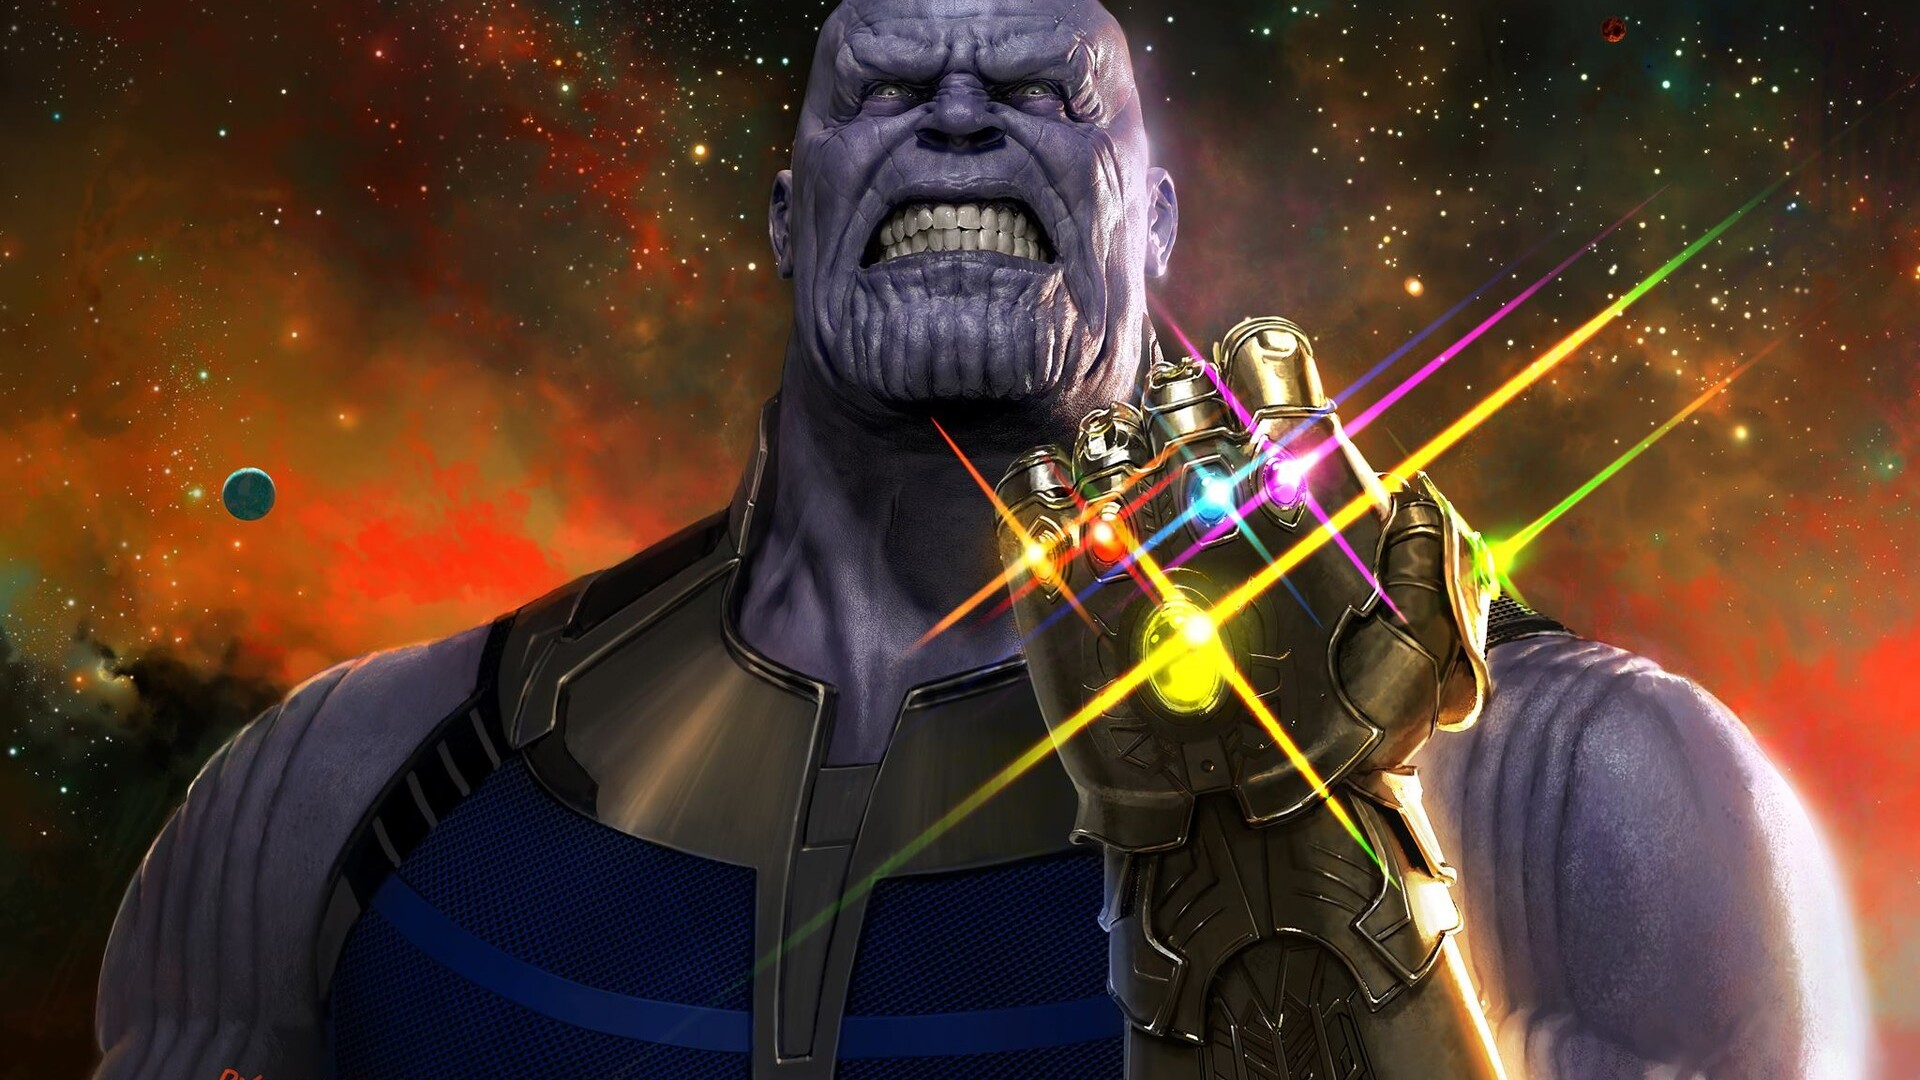 1920x1080 Thanos Avengers Infinity War Laptop Full Hd 1080p Hd 4k Wallpapers Images Backgrounds Photos And Pictures